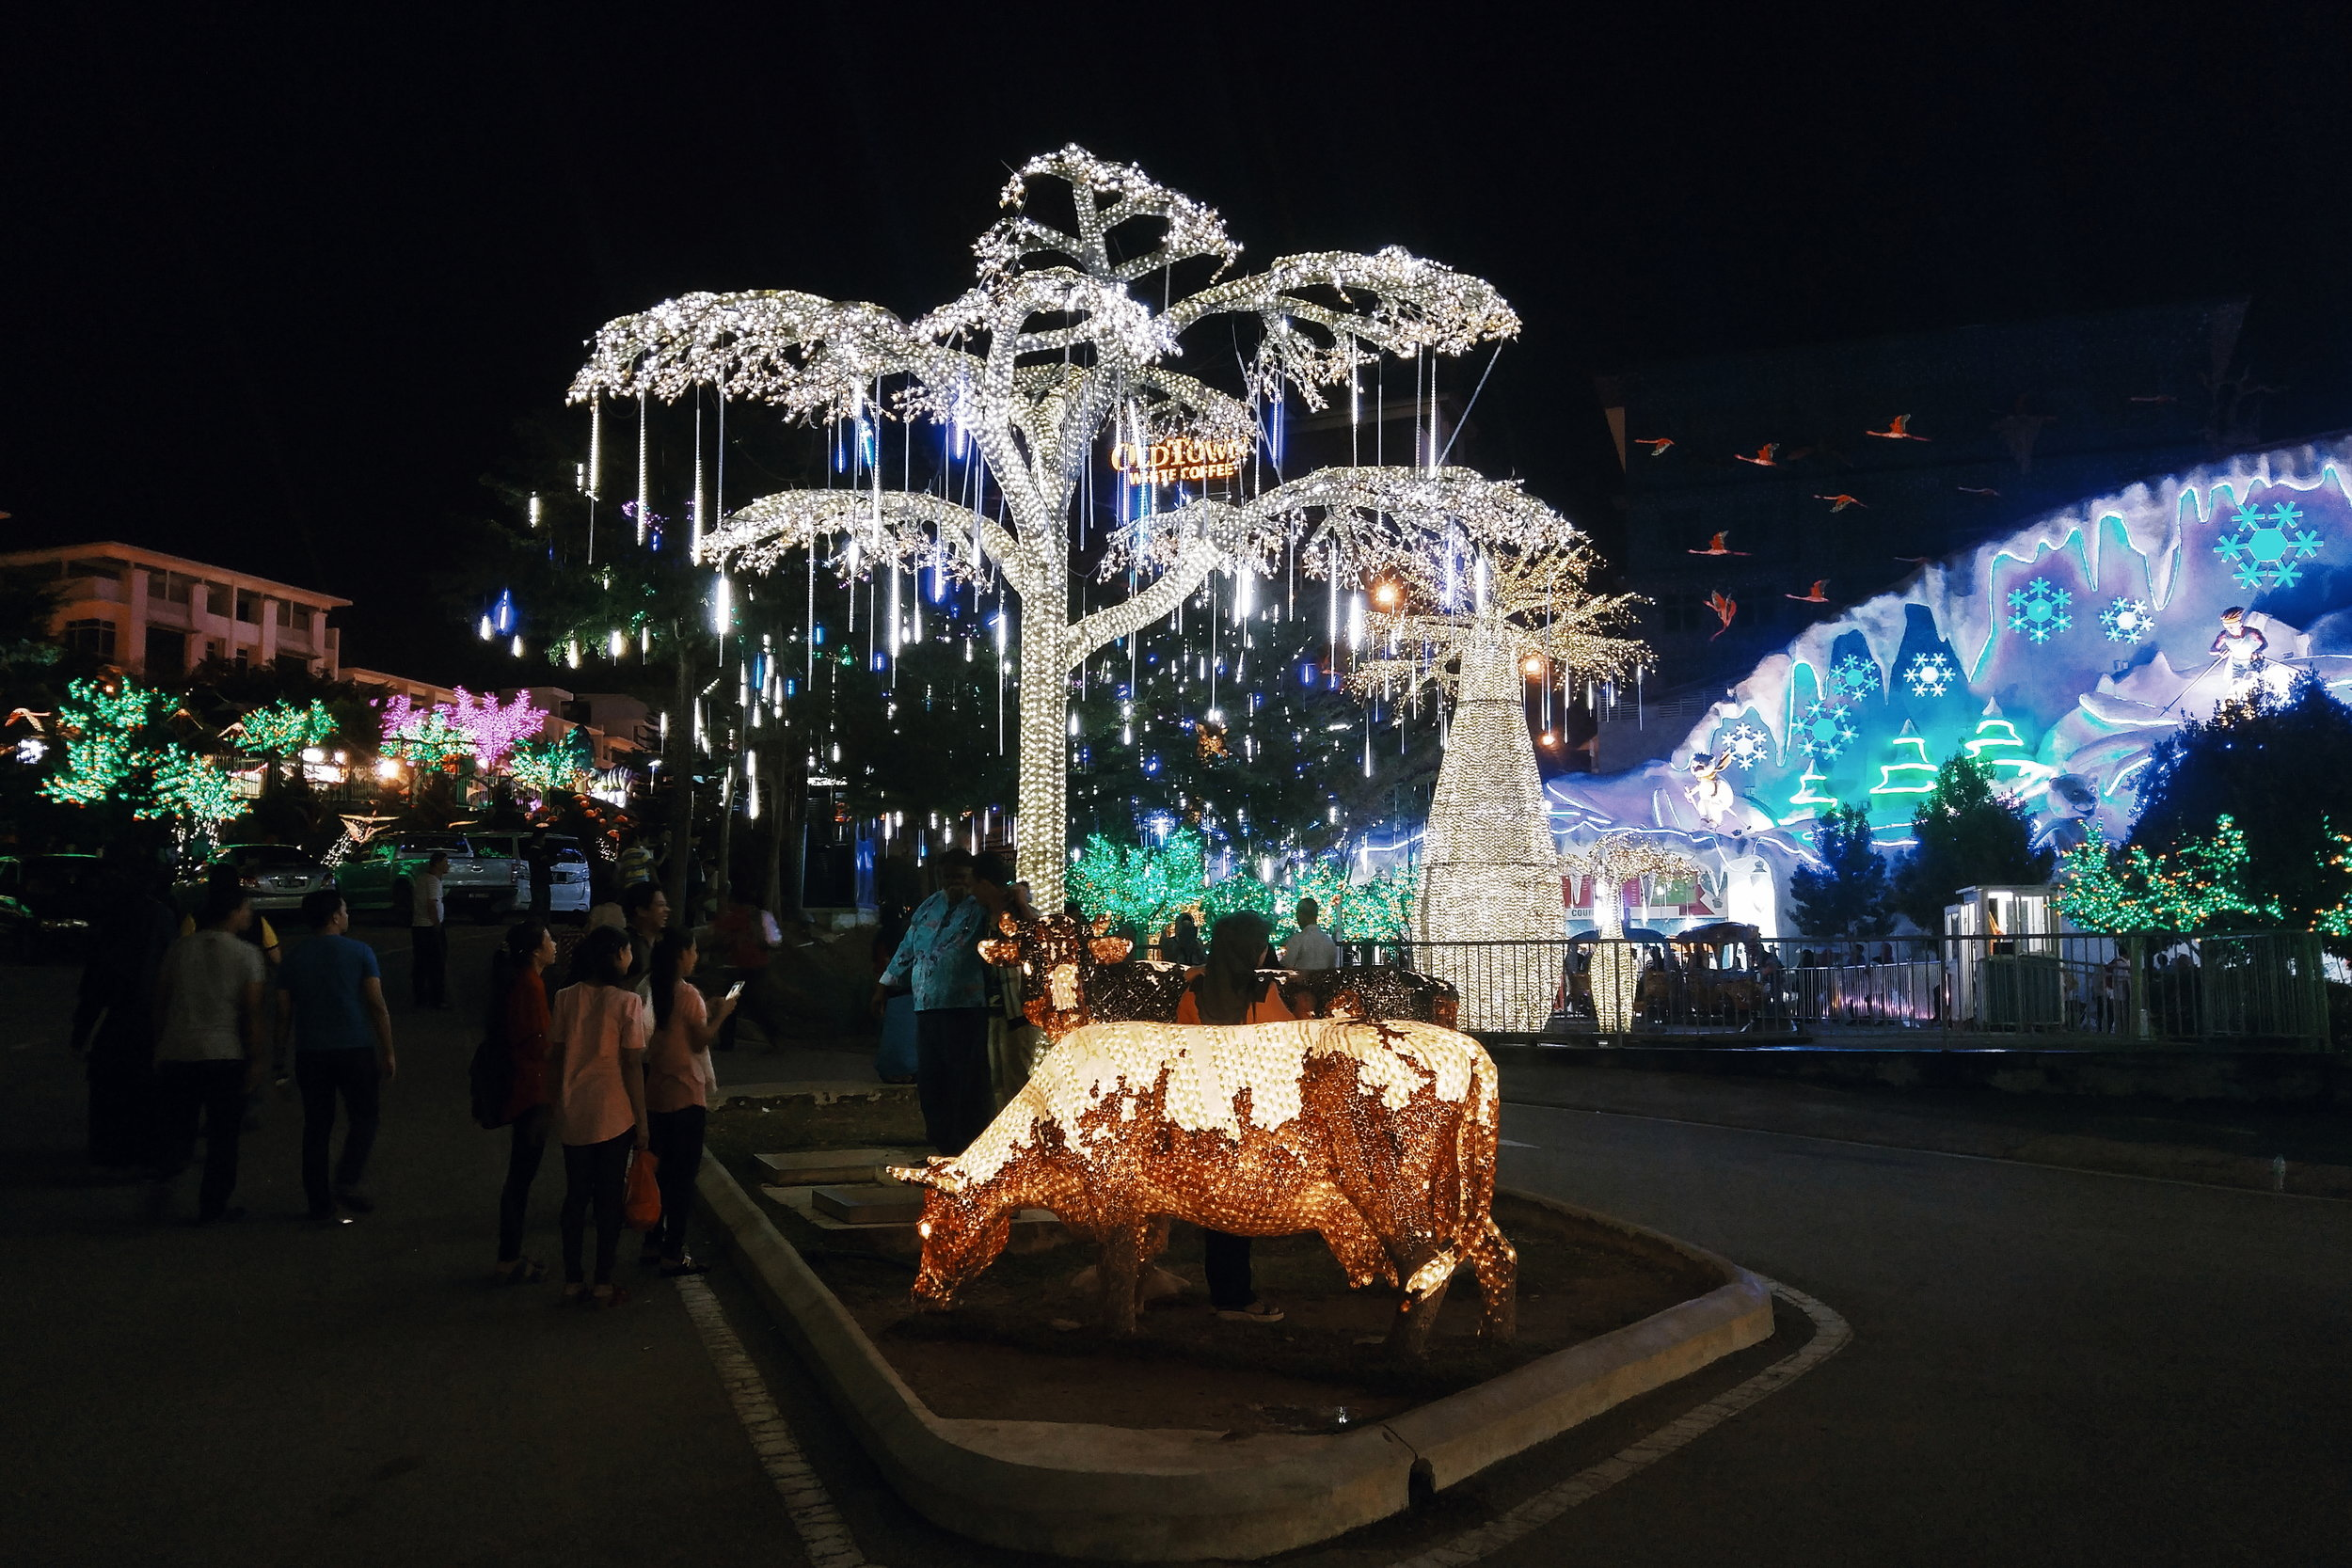 did i mention illuminated cows?